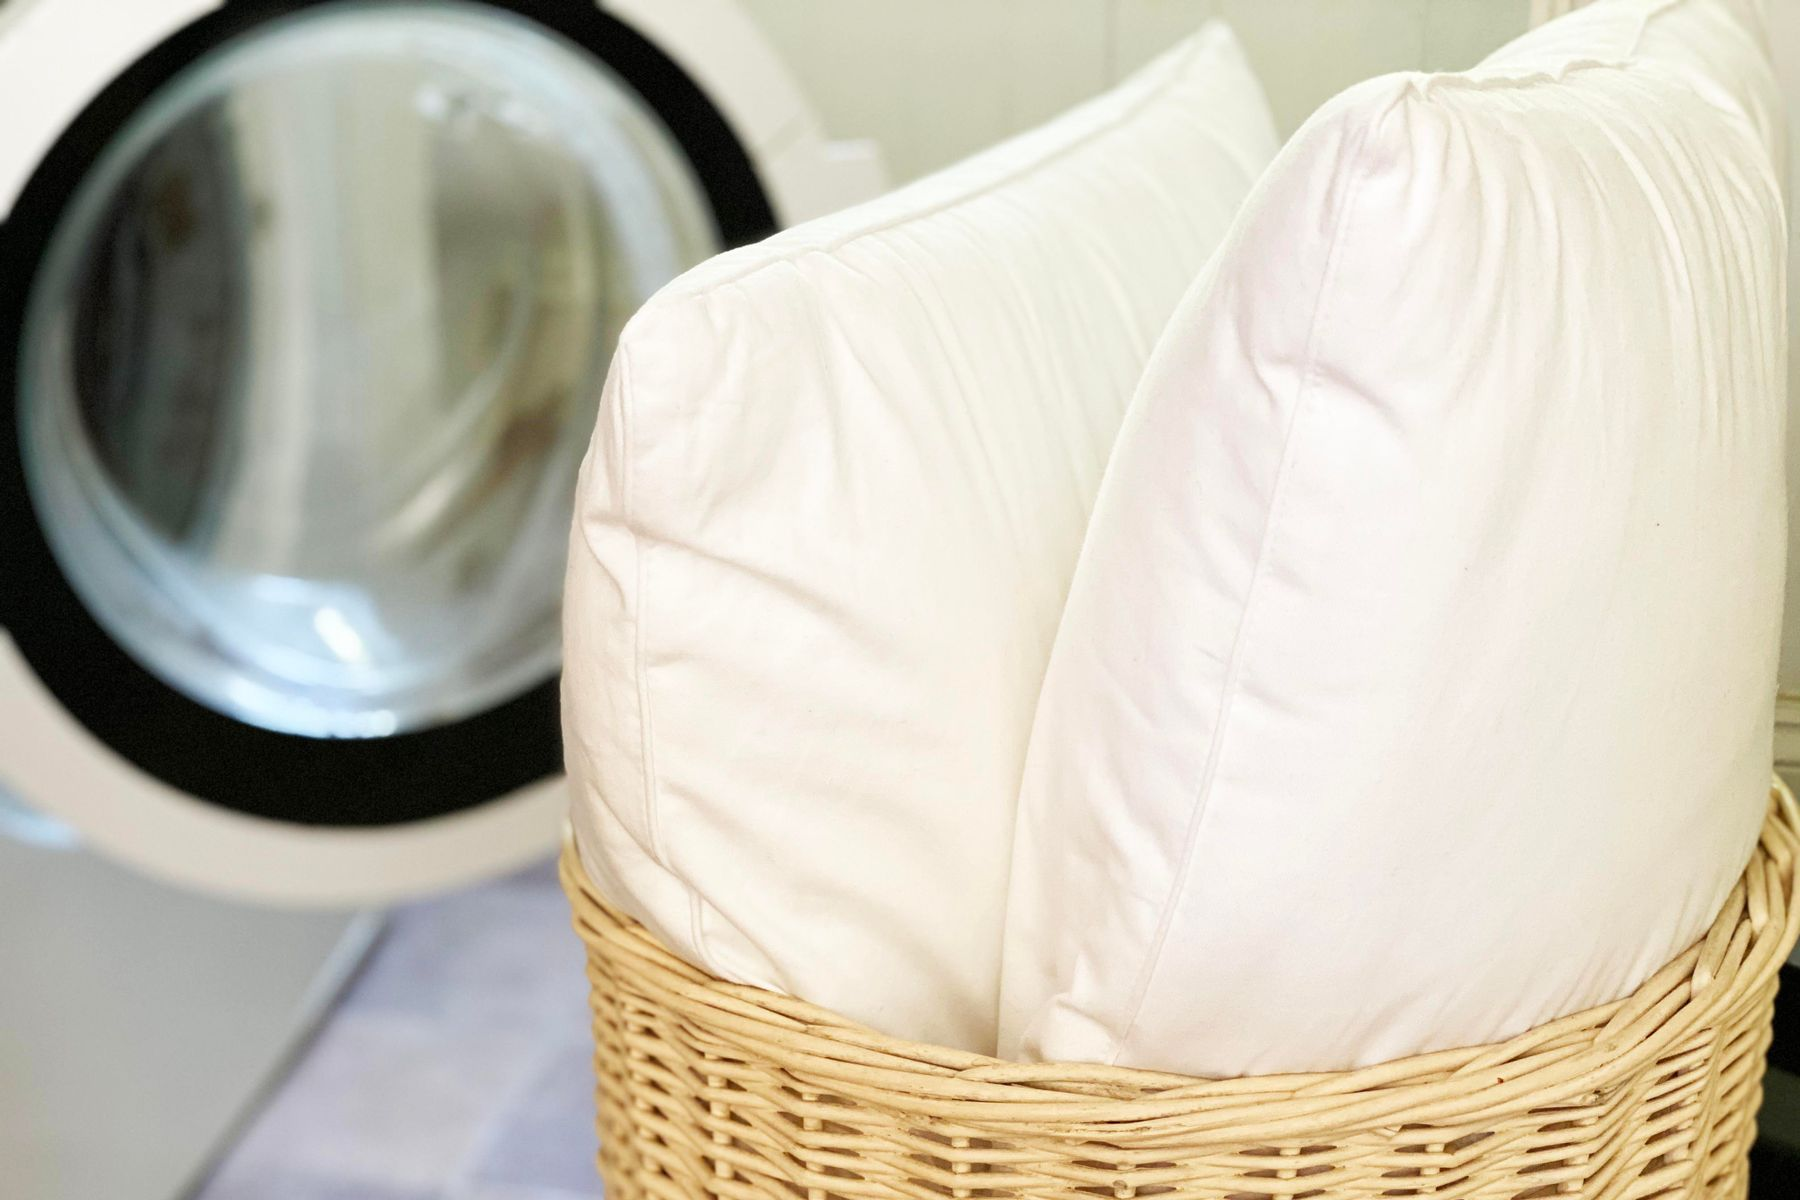 Two pillows in a basket